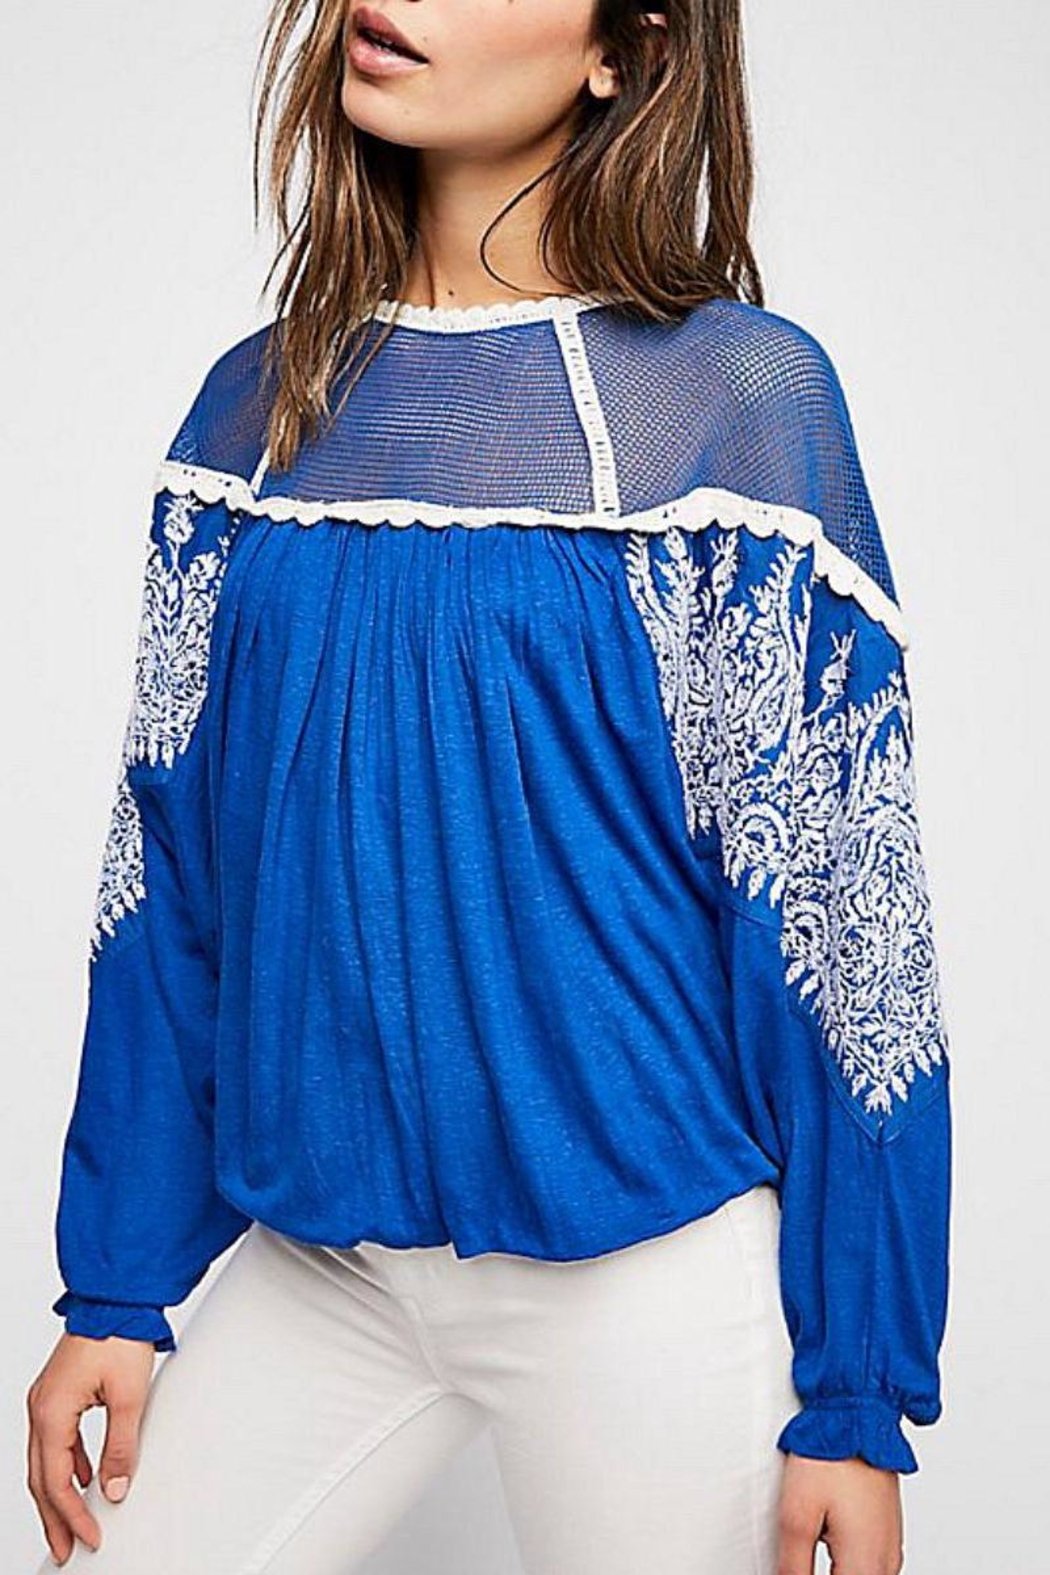 Free People Embroidered Bohemian Top - Main Image